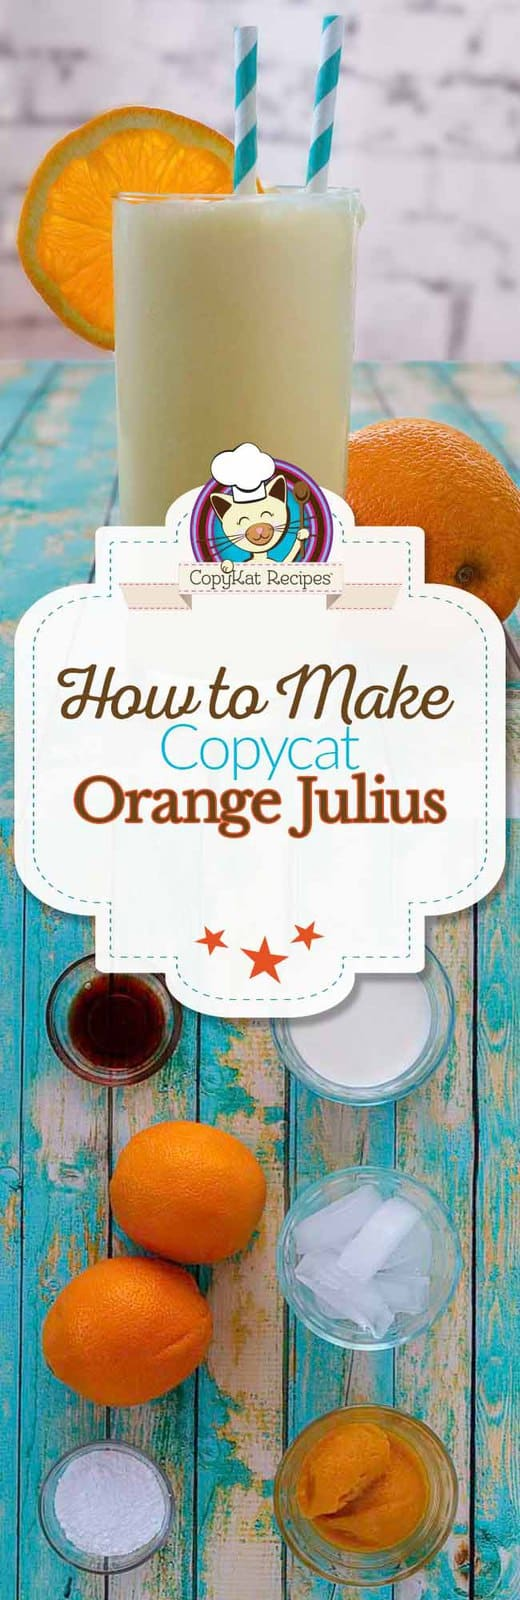 Make your own homemade Orange Julius with this easy copycat recipe. #copycat #recipe #beverage #non-alcoholic #orangejulius #smoothie #easy